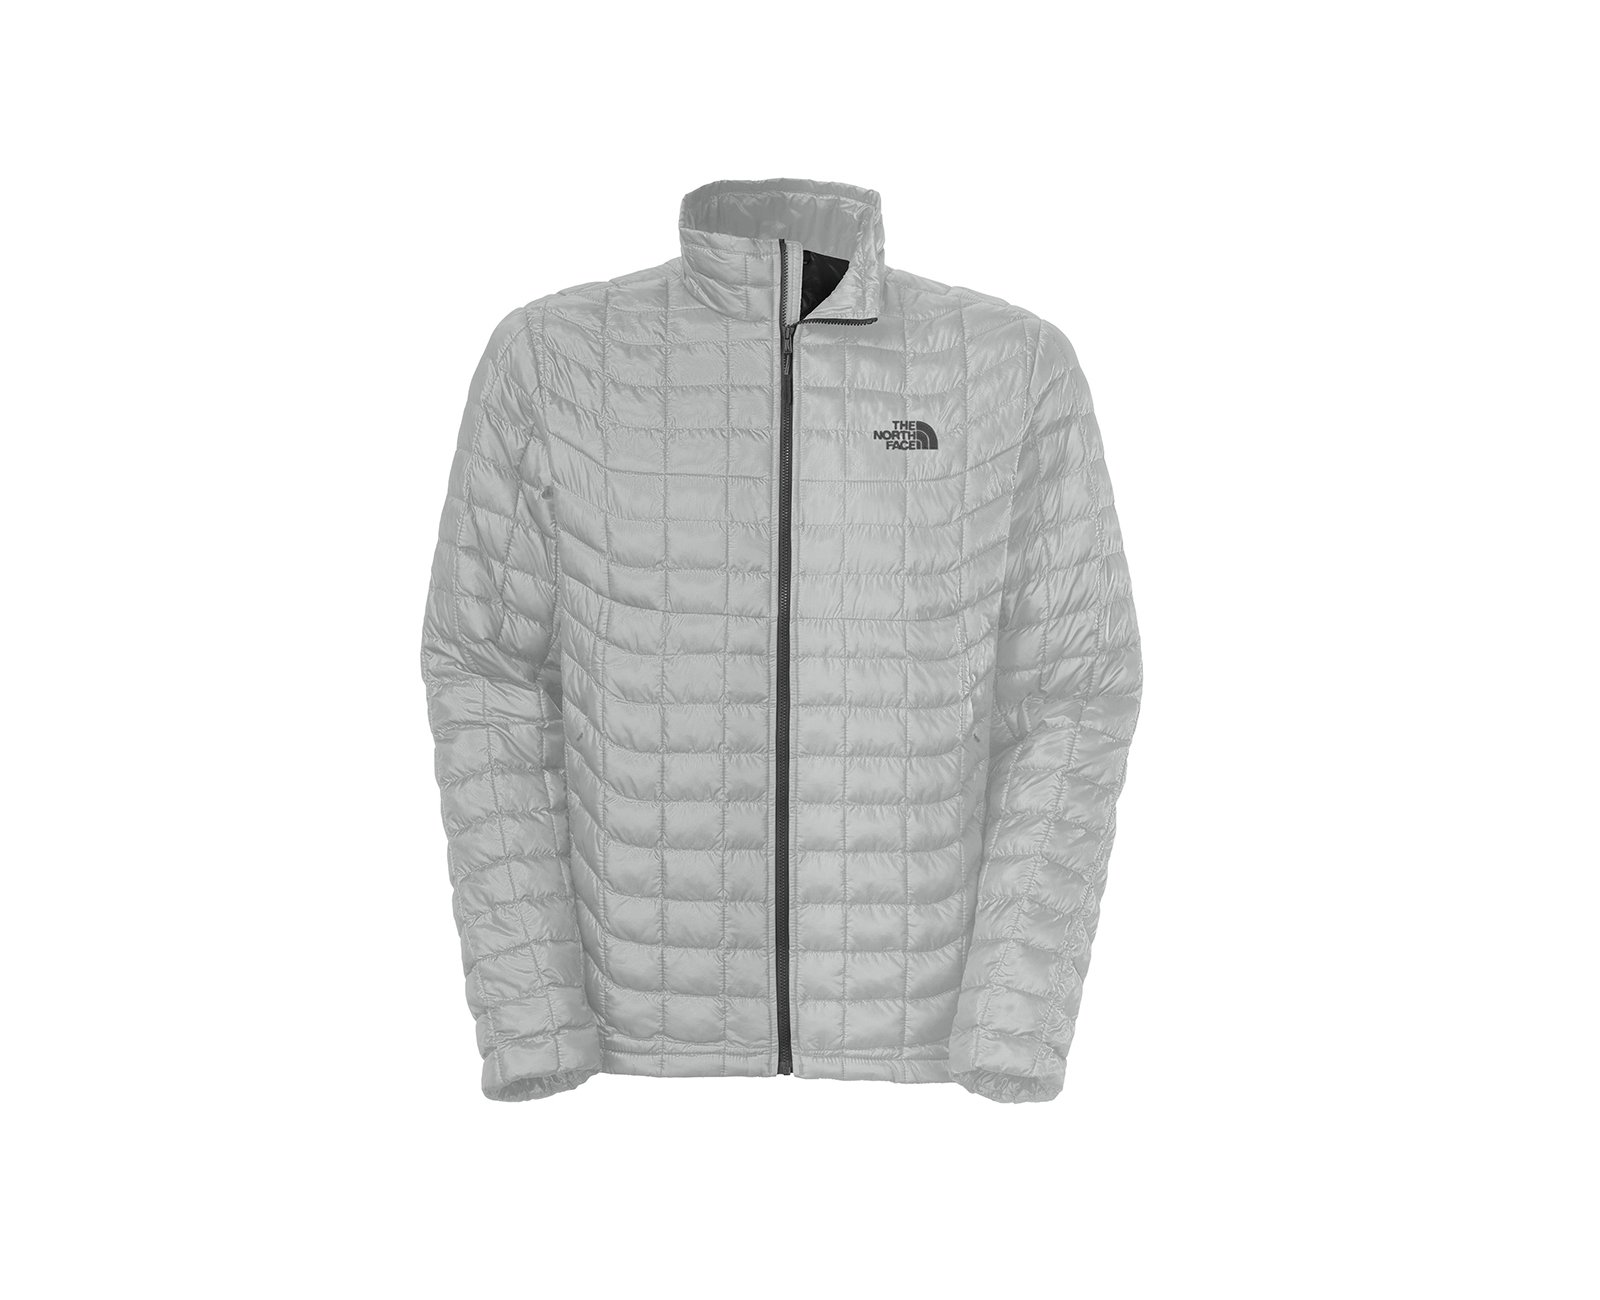 Jaqueta Thermoball Full Zip Masculina - Cinza  - The North Face